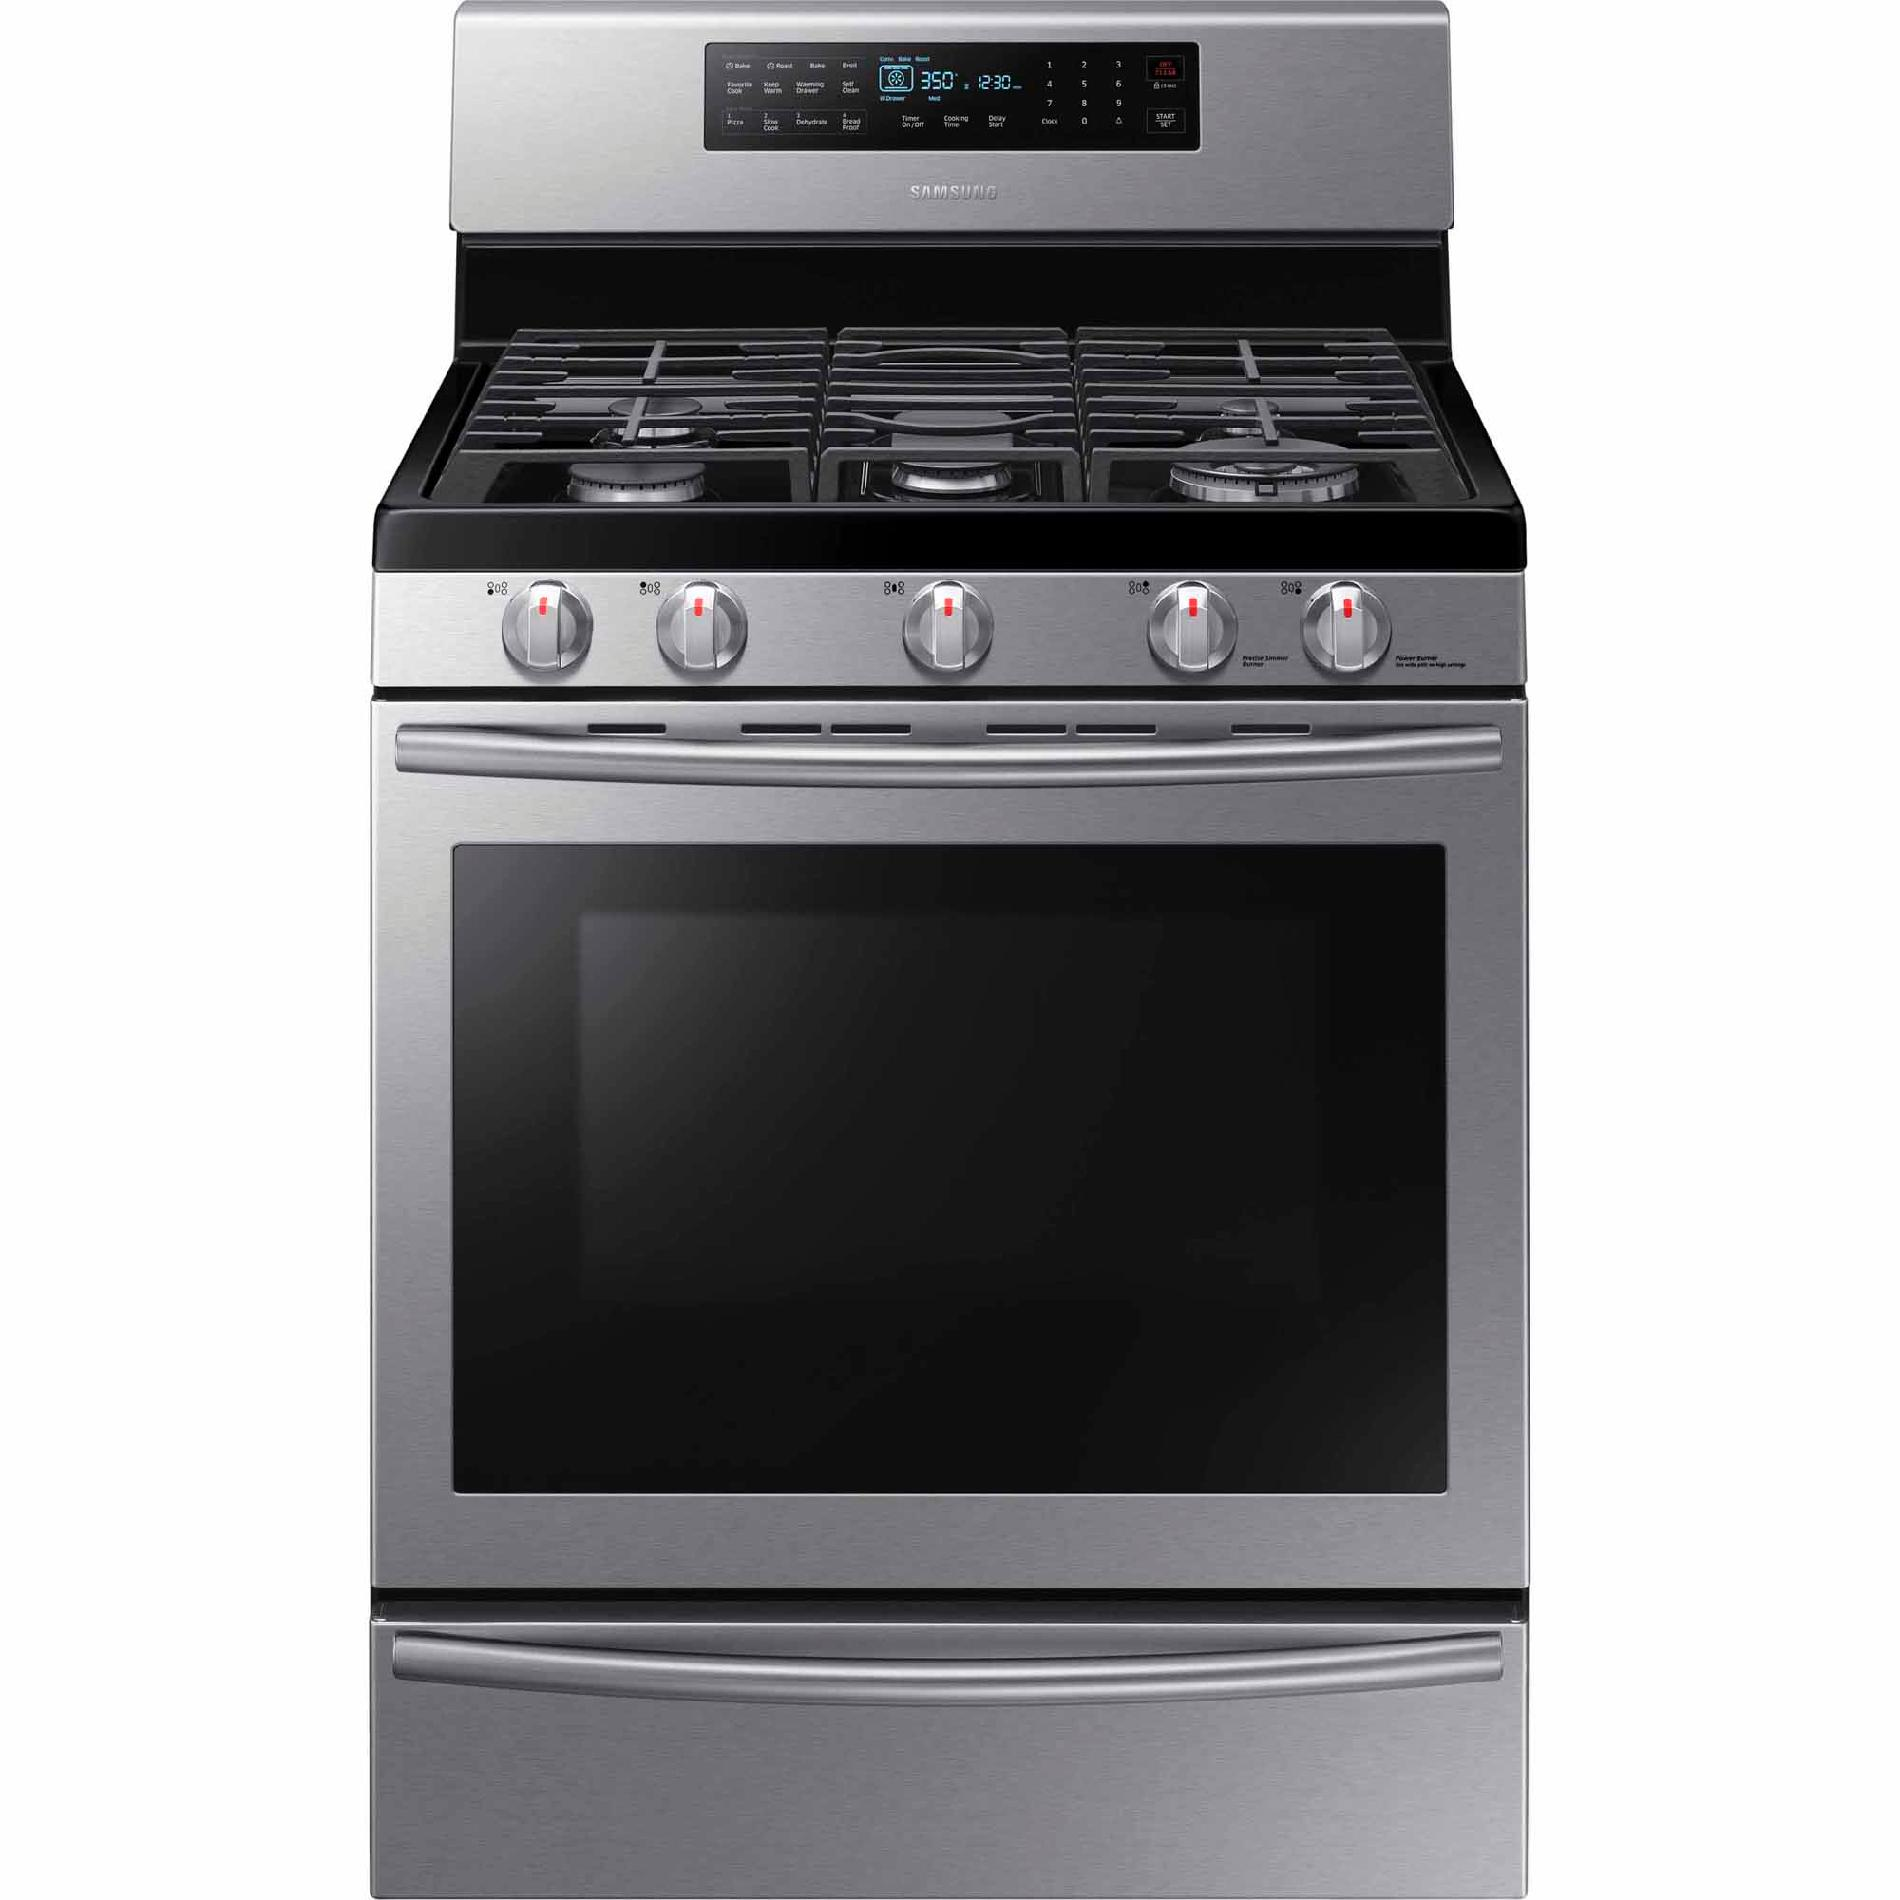 Samsung NX58H5650WS  5.8 cu. ft. Gas Range w/ True Convection - Stainless Steel